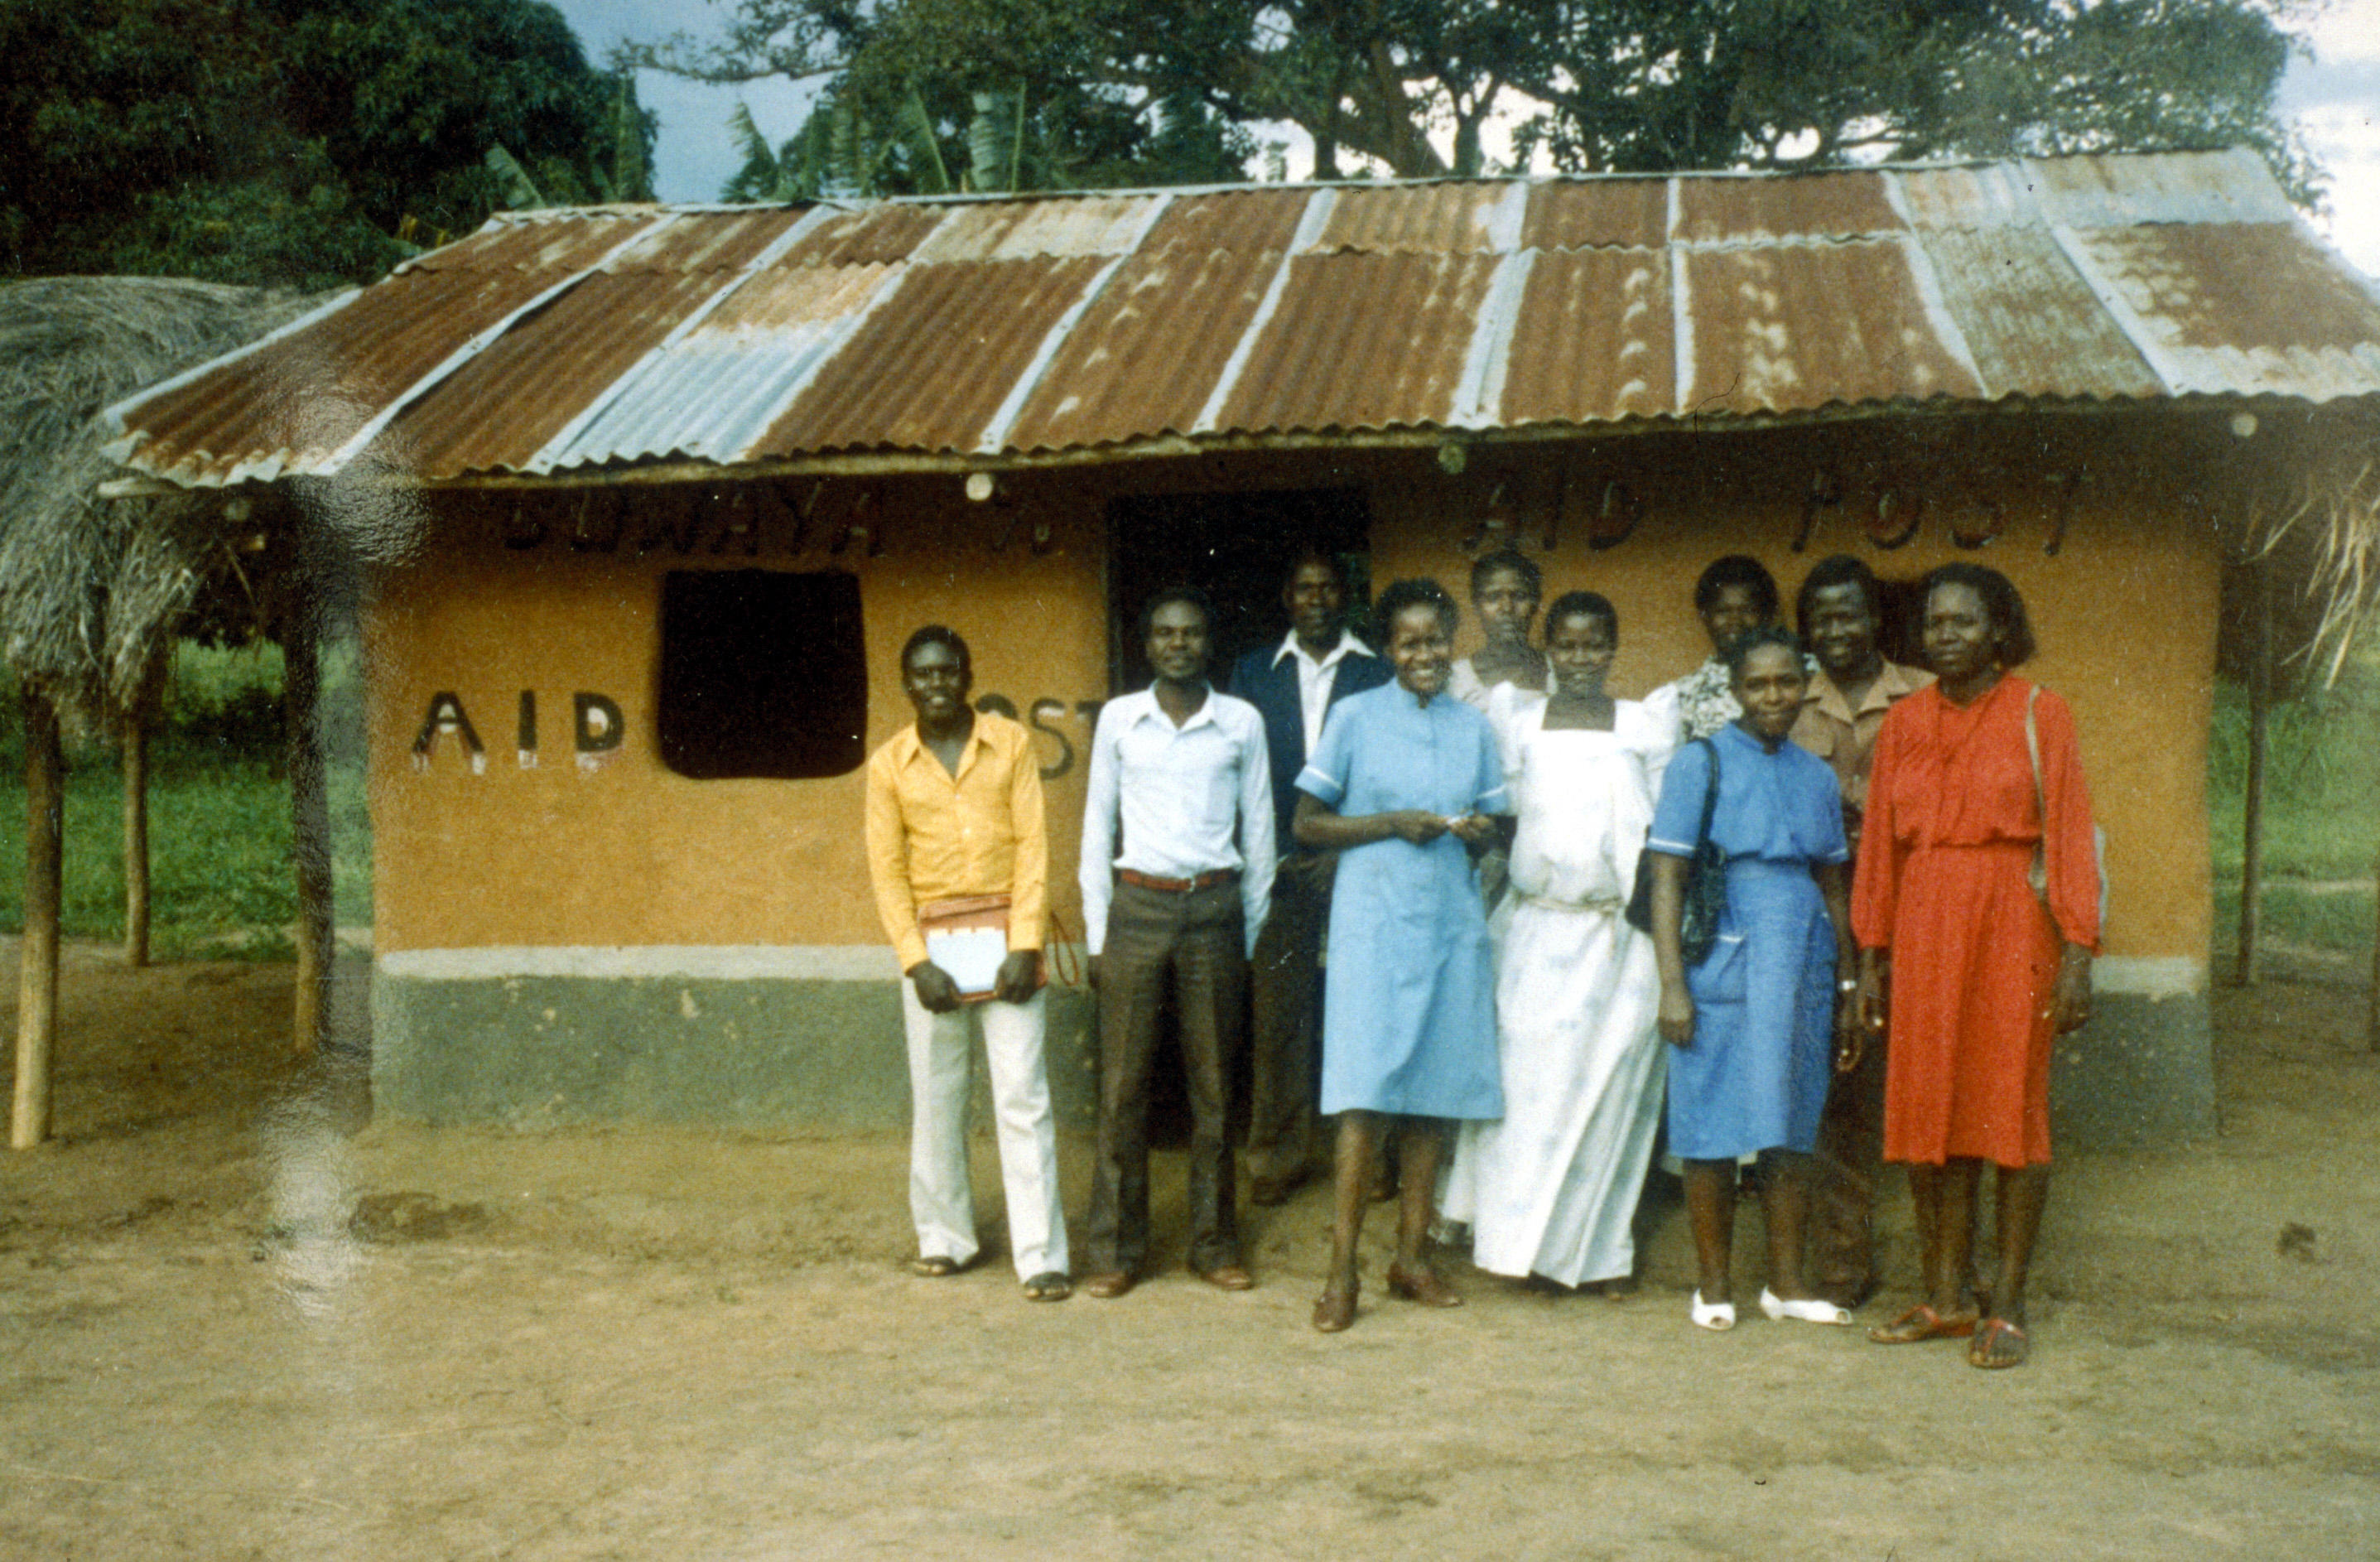 A group of smiling African men and women outside a hut with 'AID' painted on the wall